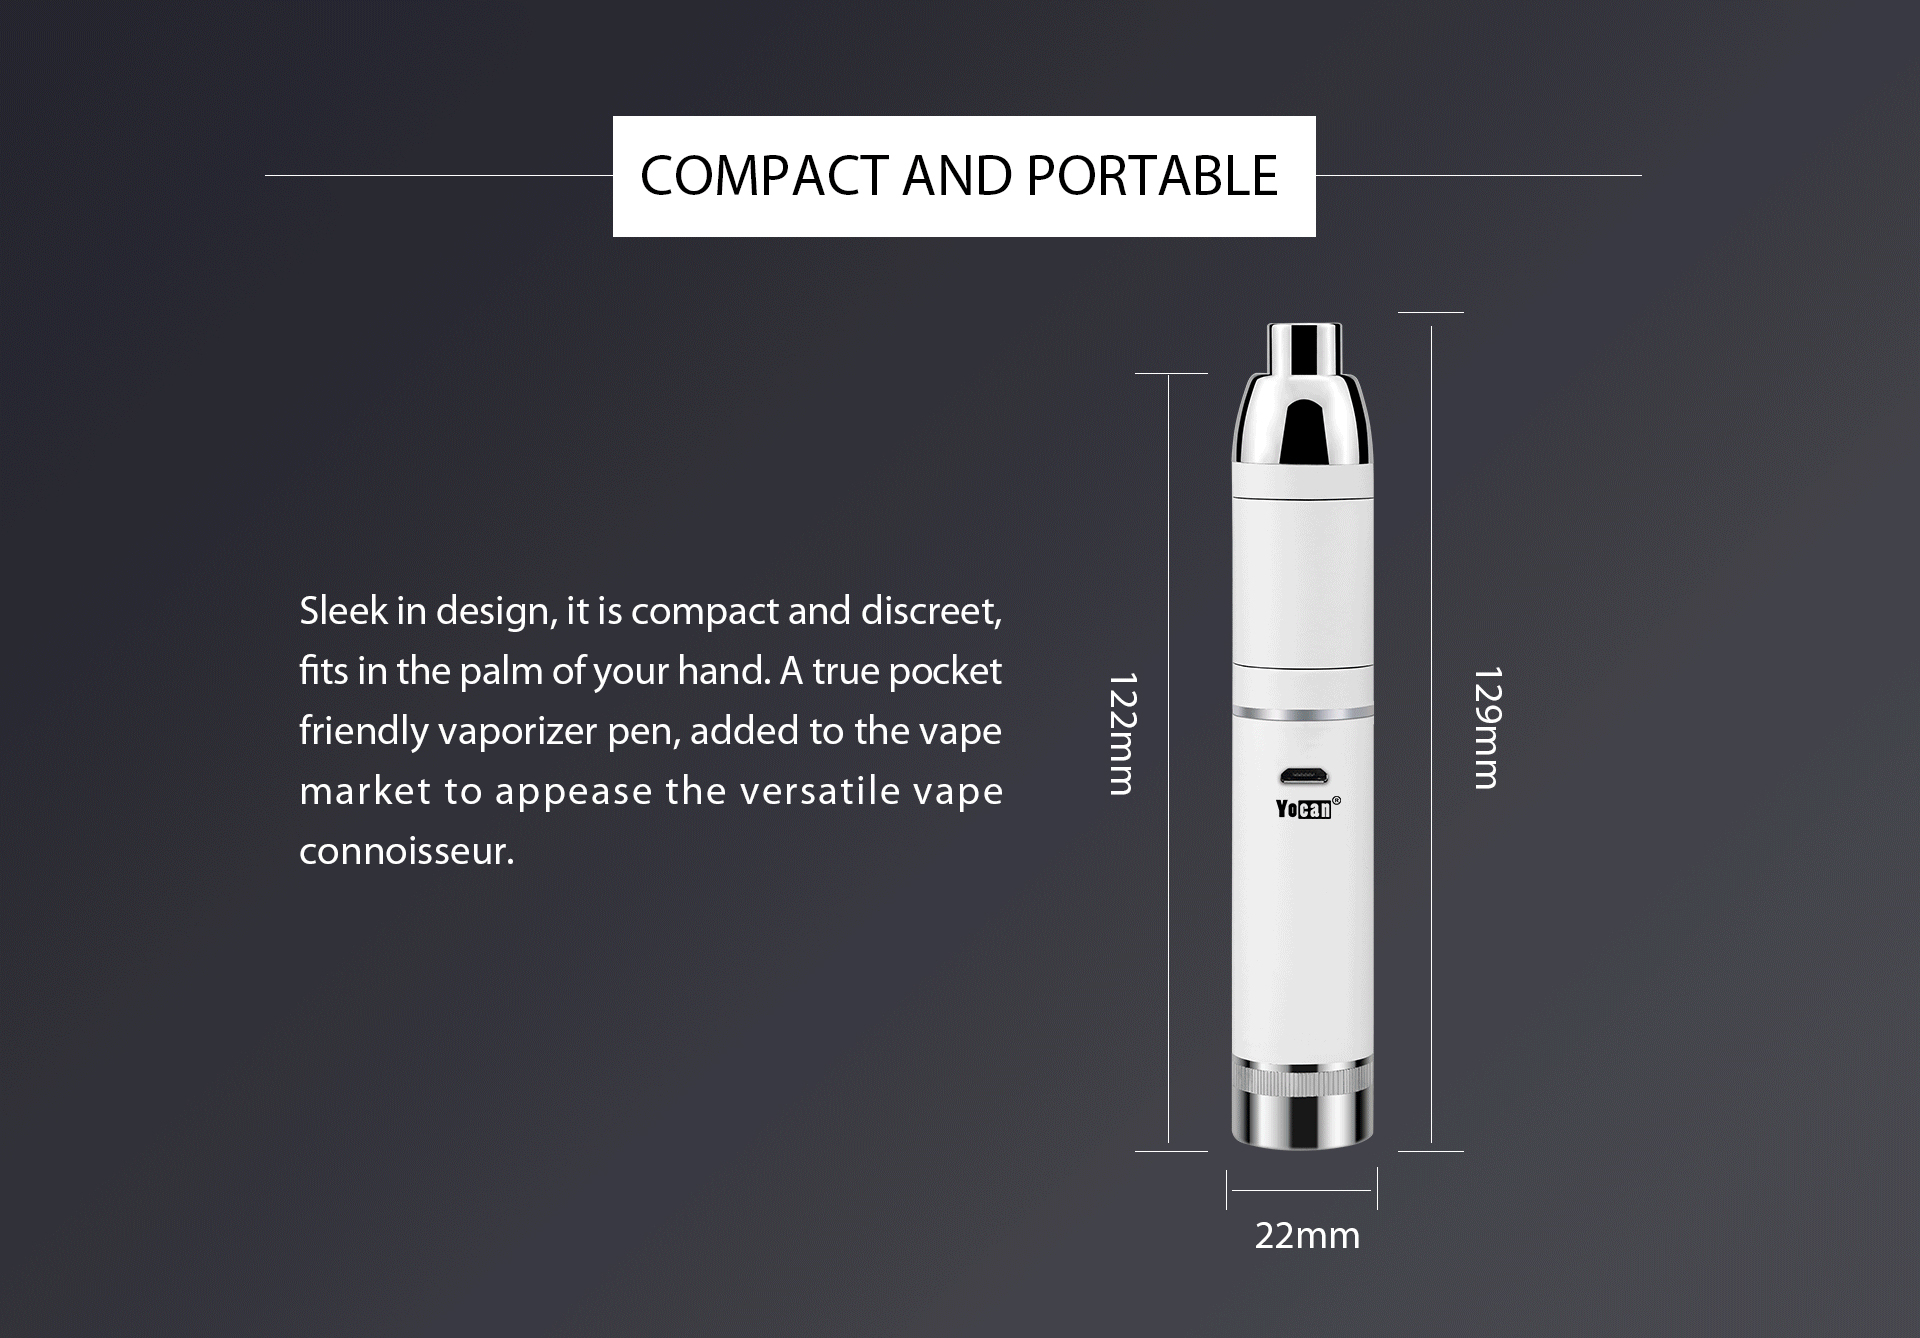 Yocan loaded is sleek in design, compact and discreet.